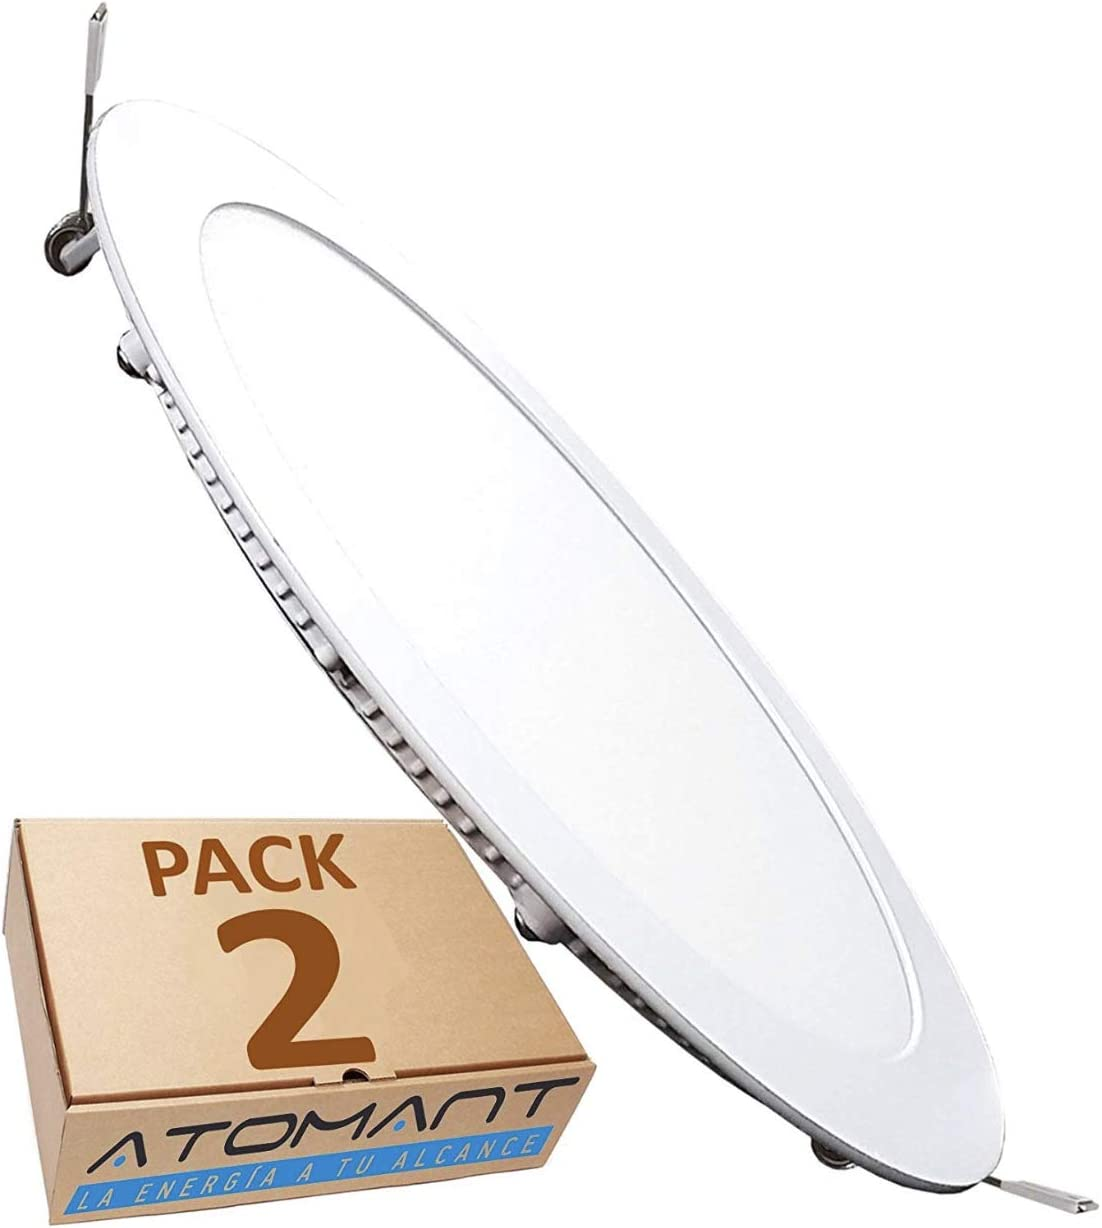 LED ATOMANT, S.L. Pack 2x Downlight LED Panel Extraplano Redondo, Iluminación 18W, 18 W, Blanco Frio 6500K, 225 mm